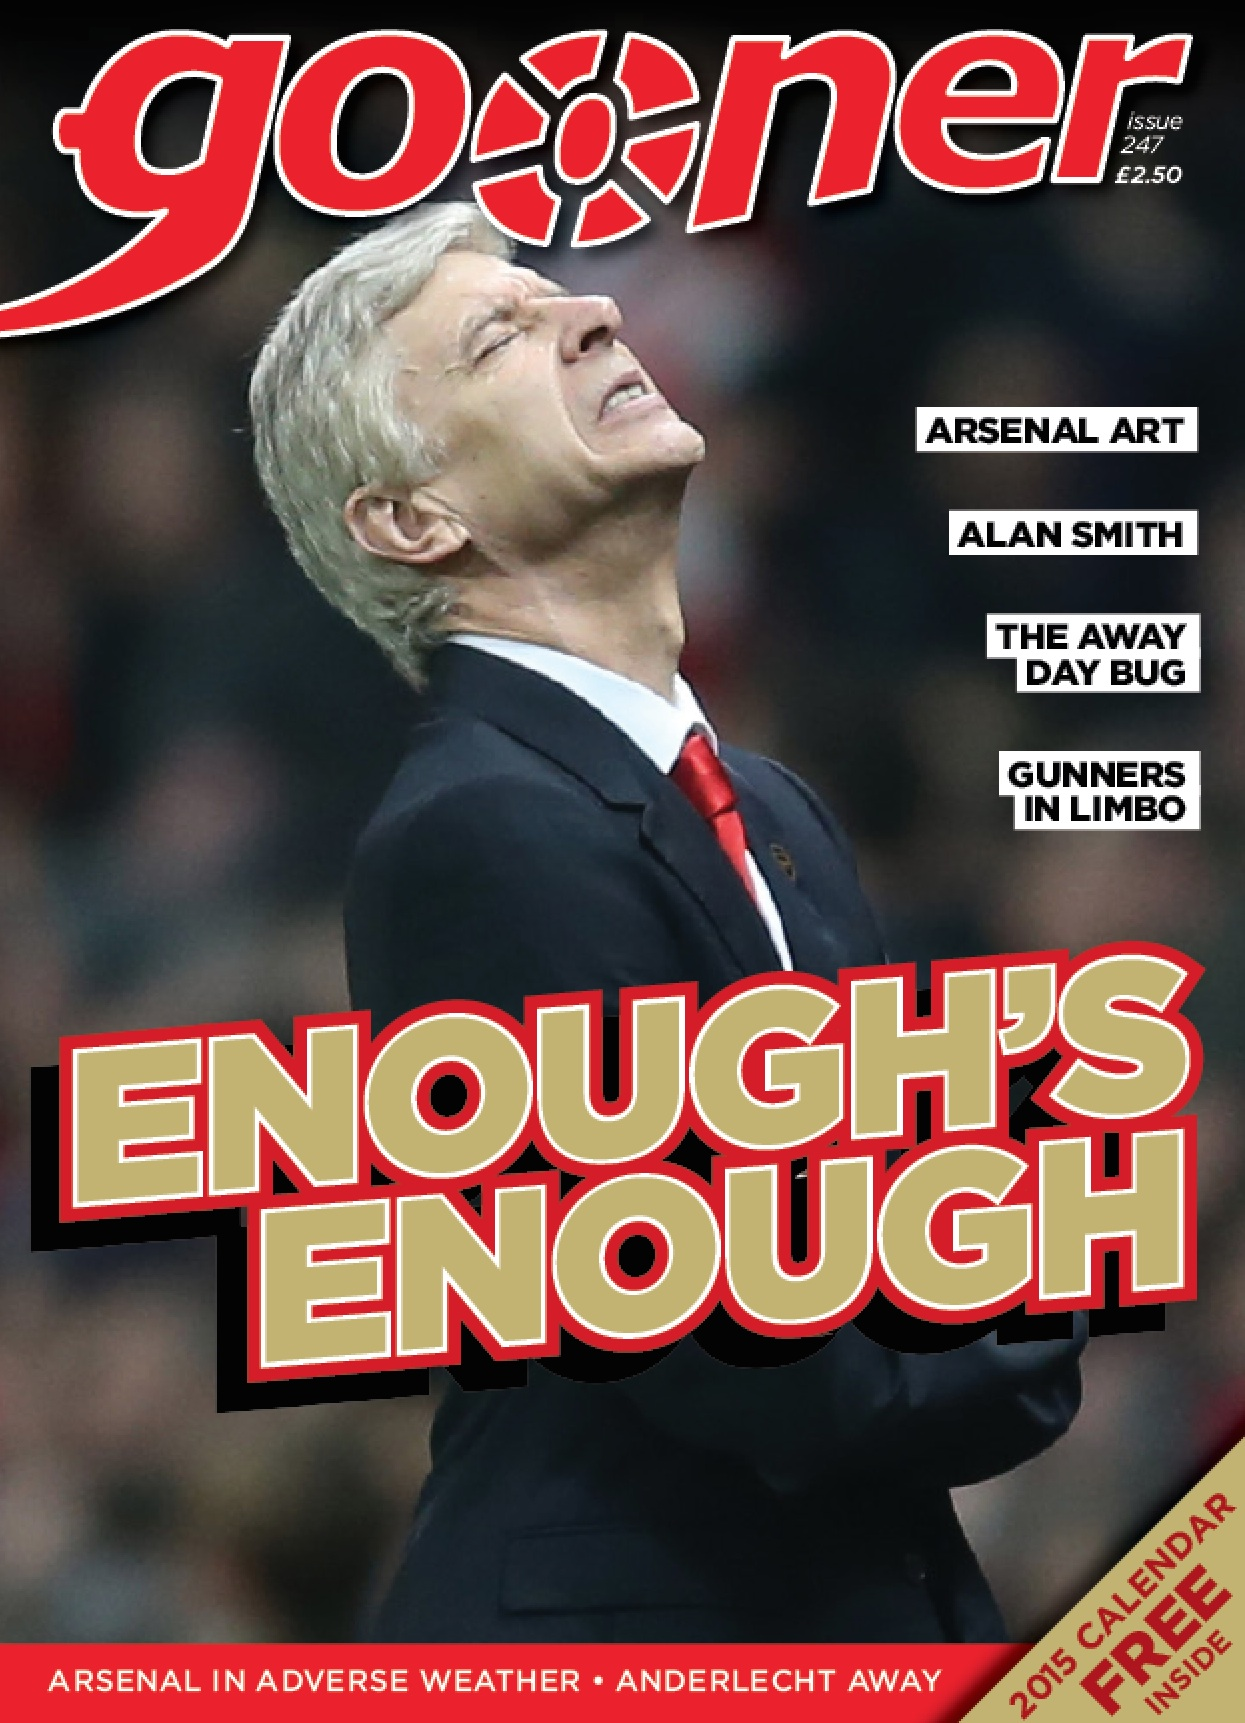 The Gooner - Issue 247